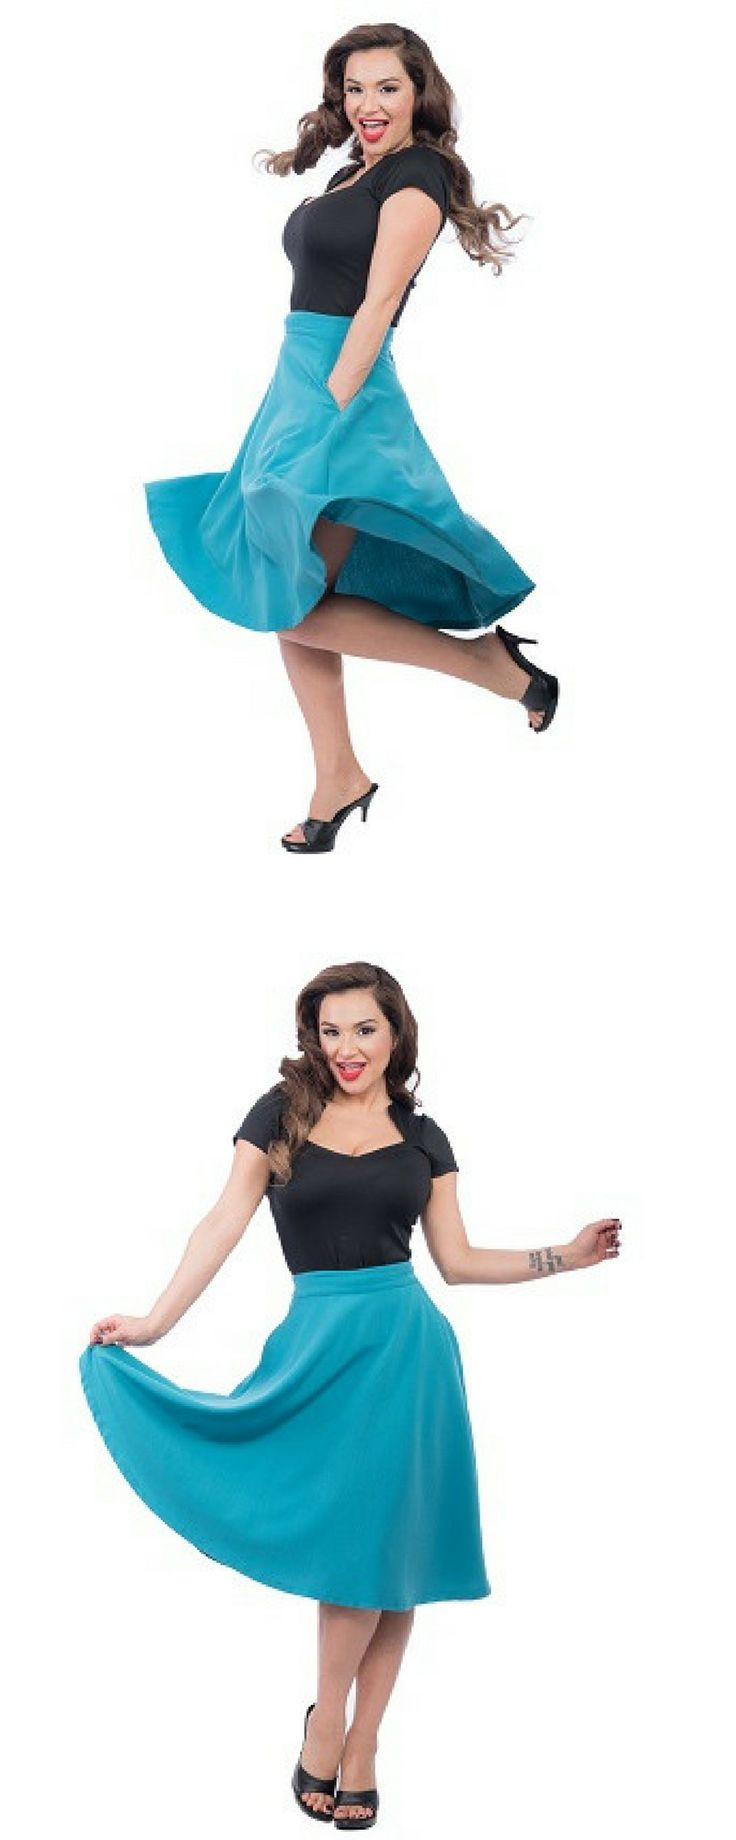 Pocket High Waist Thrills Skirt in Teal